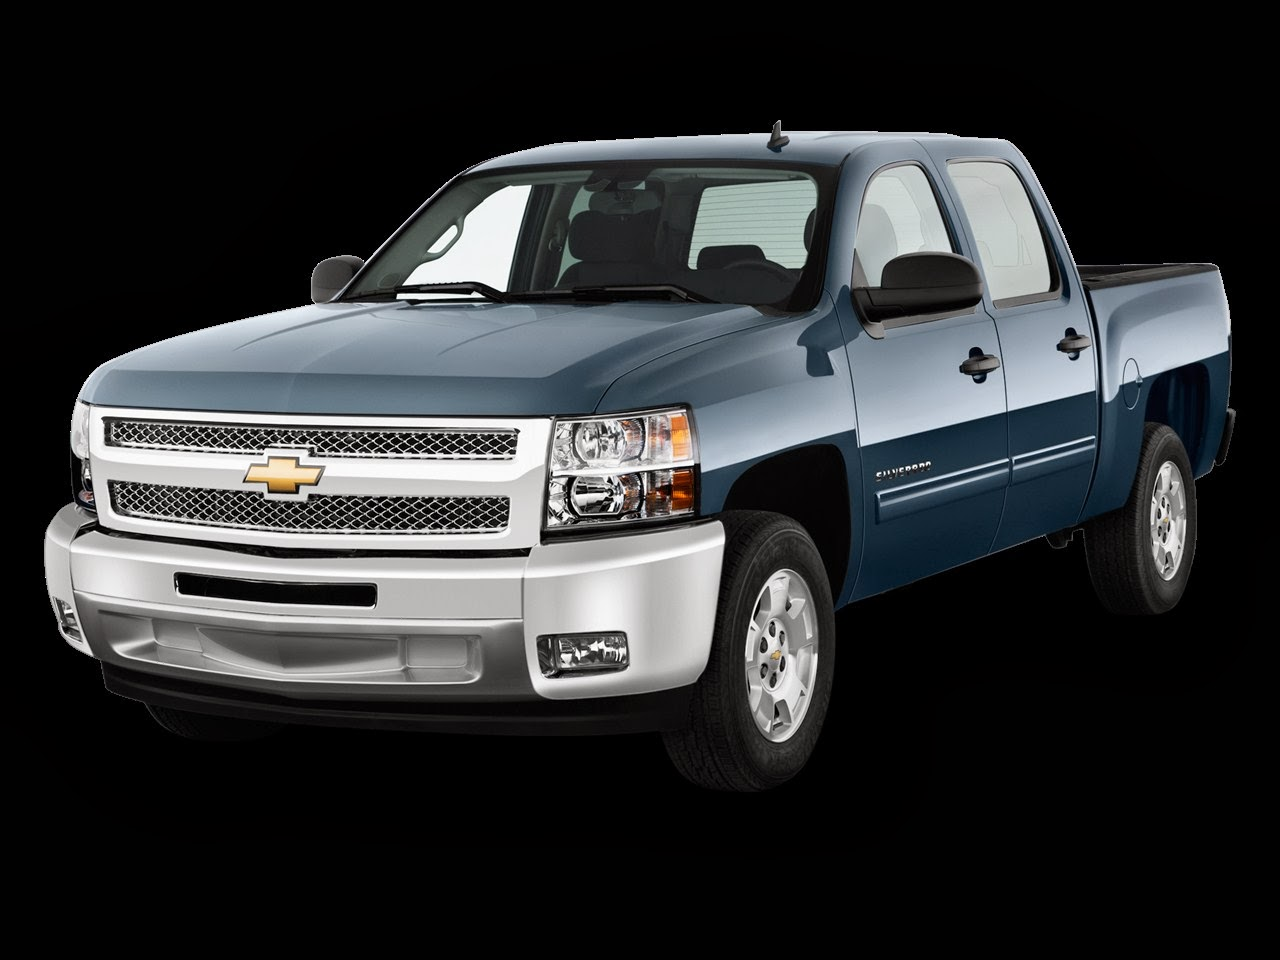 Chevrolet silverado hybrid wallpapers